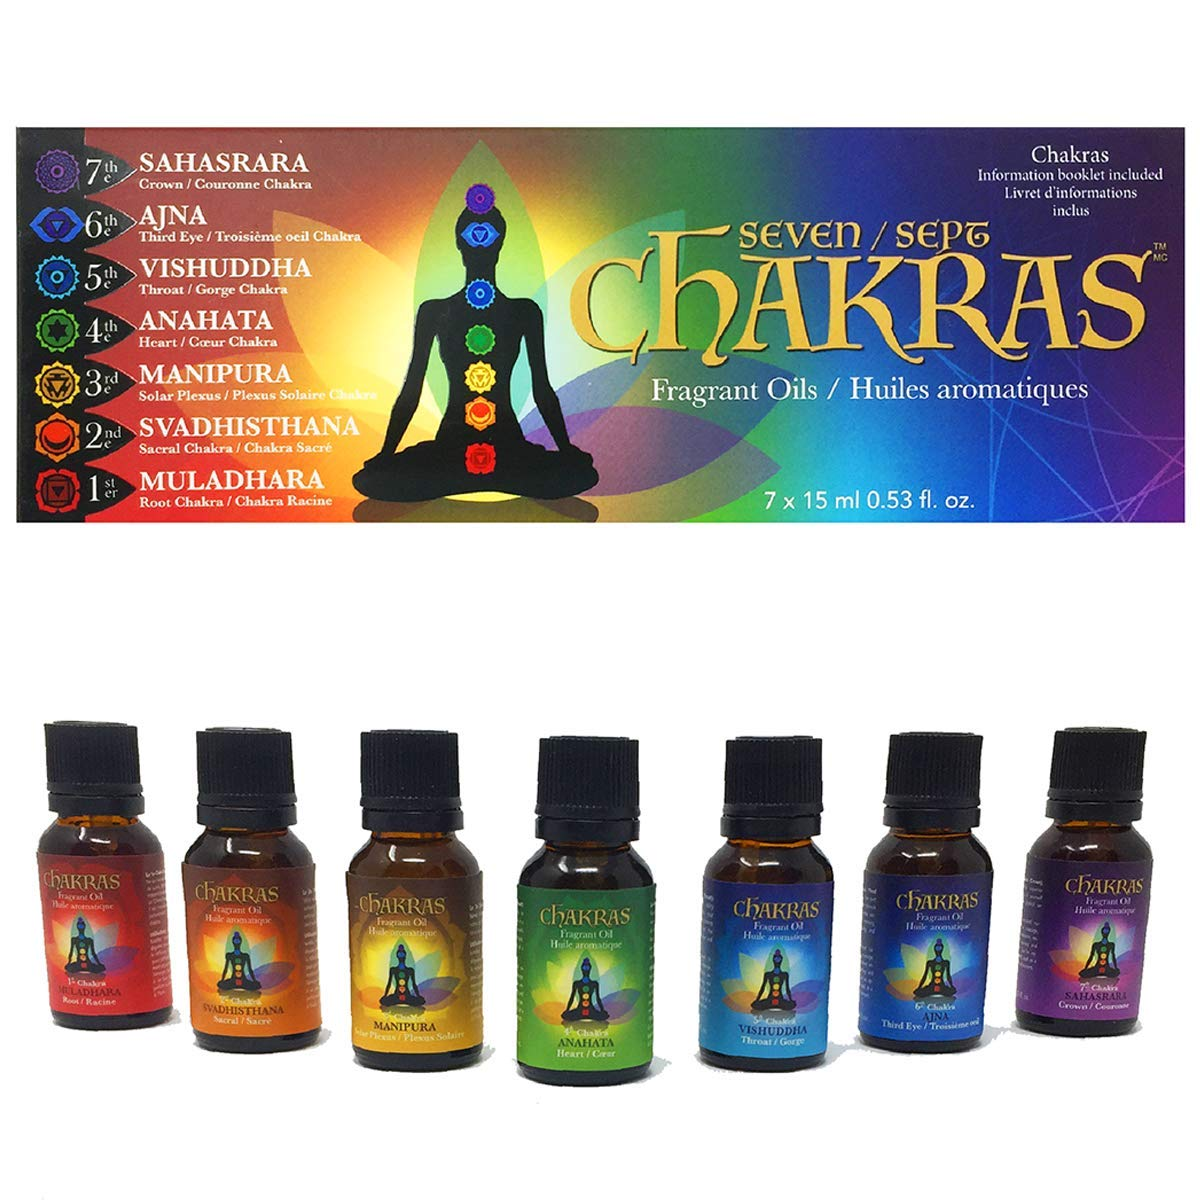 Chakras Relaxation Essential Oils Set of 7 - Concentrated Natural Oils for Diffuser, Massage, Reflection, Meditation, Environmental Scenting and Energy Work by Chakras Incense